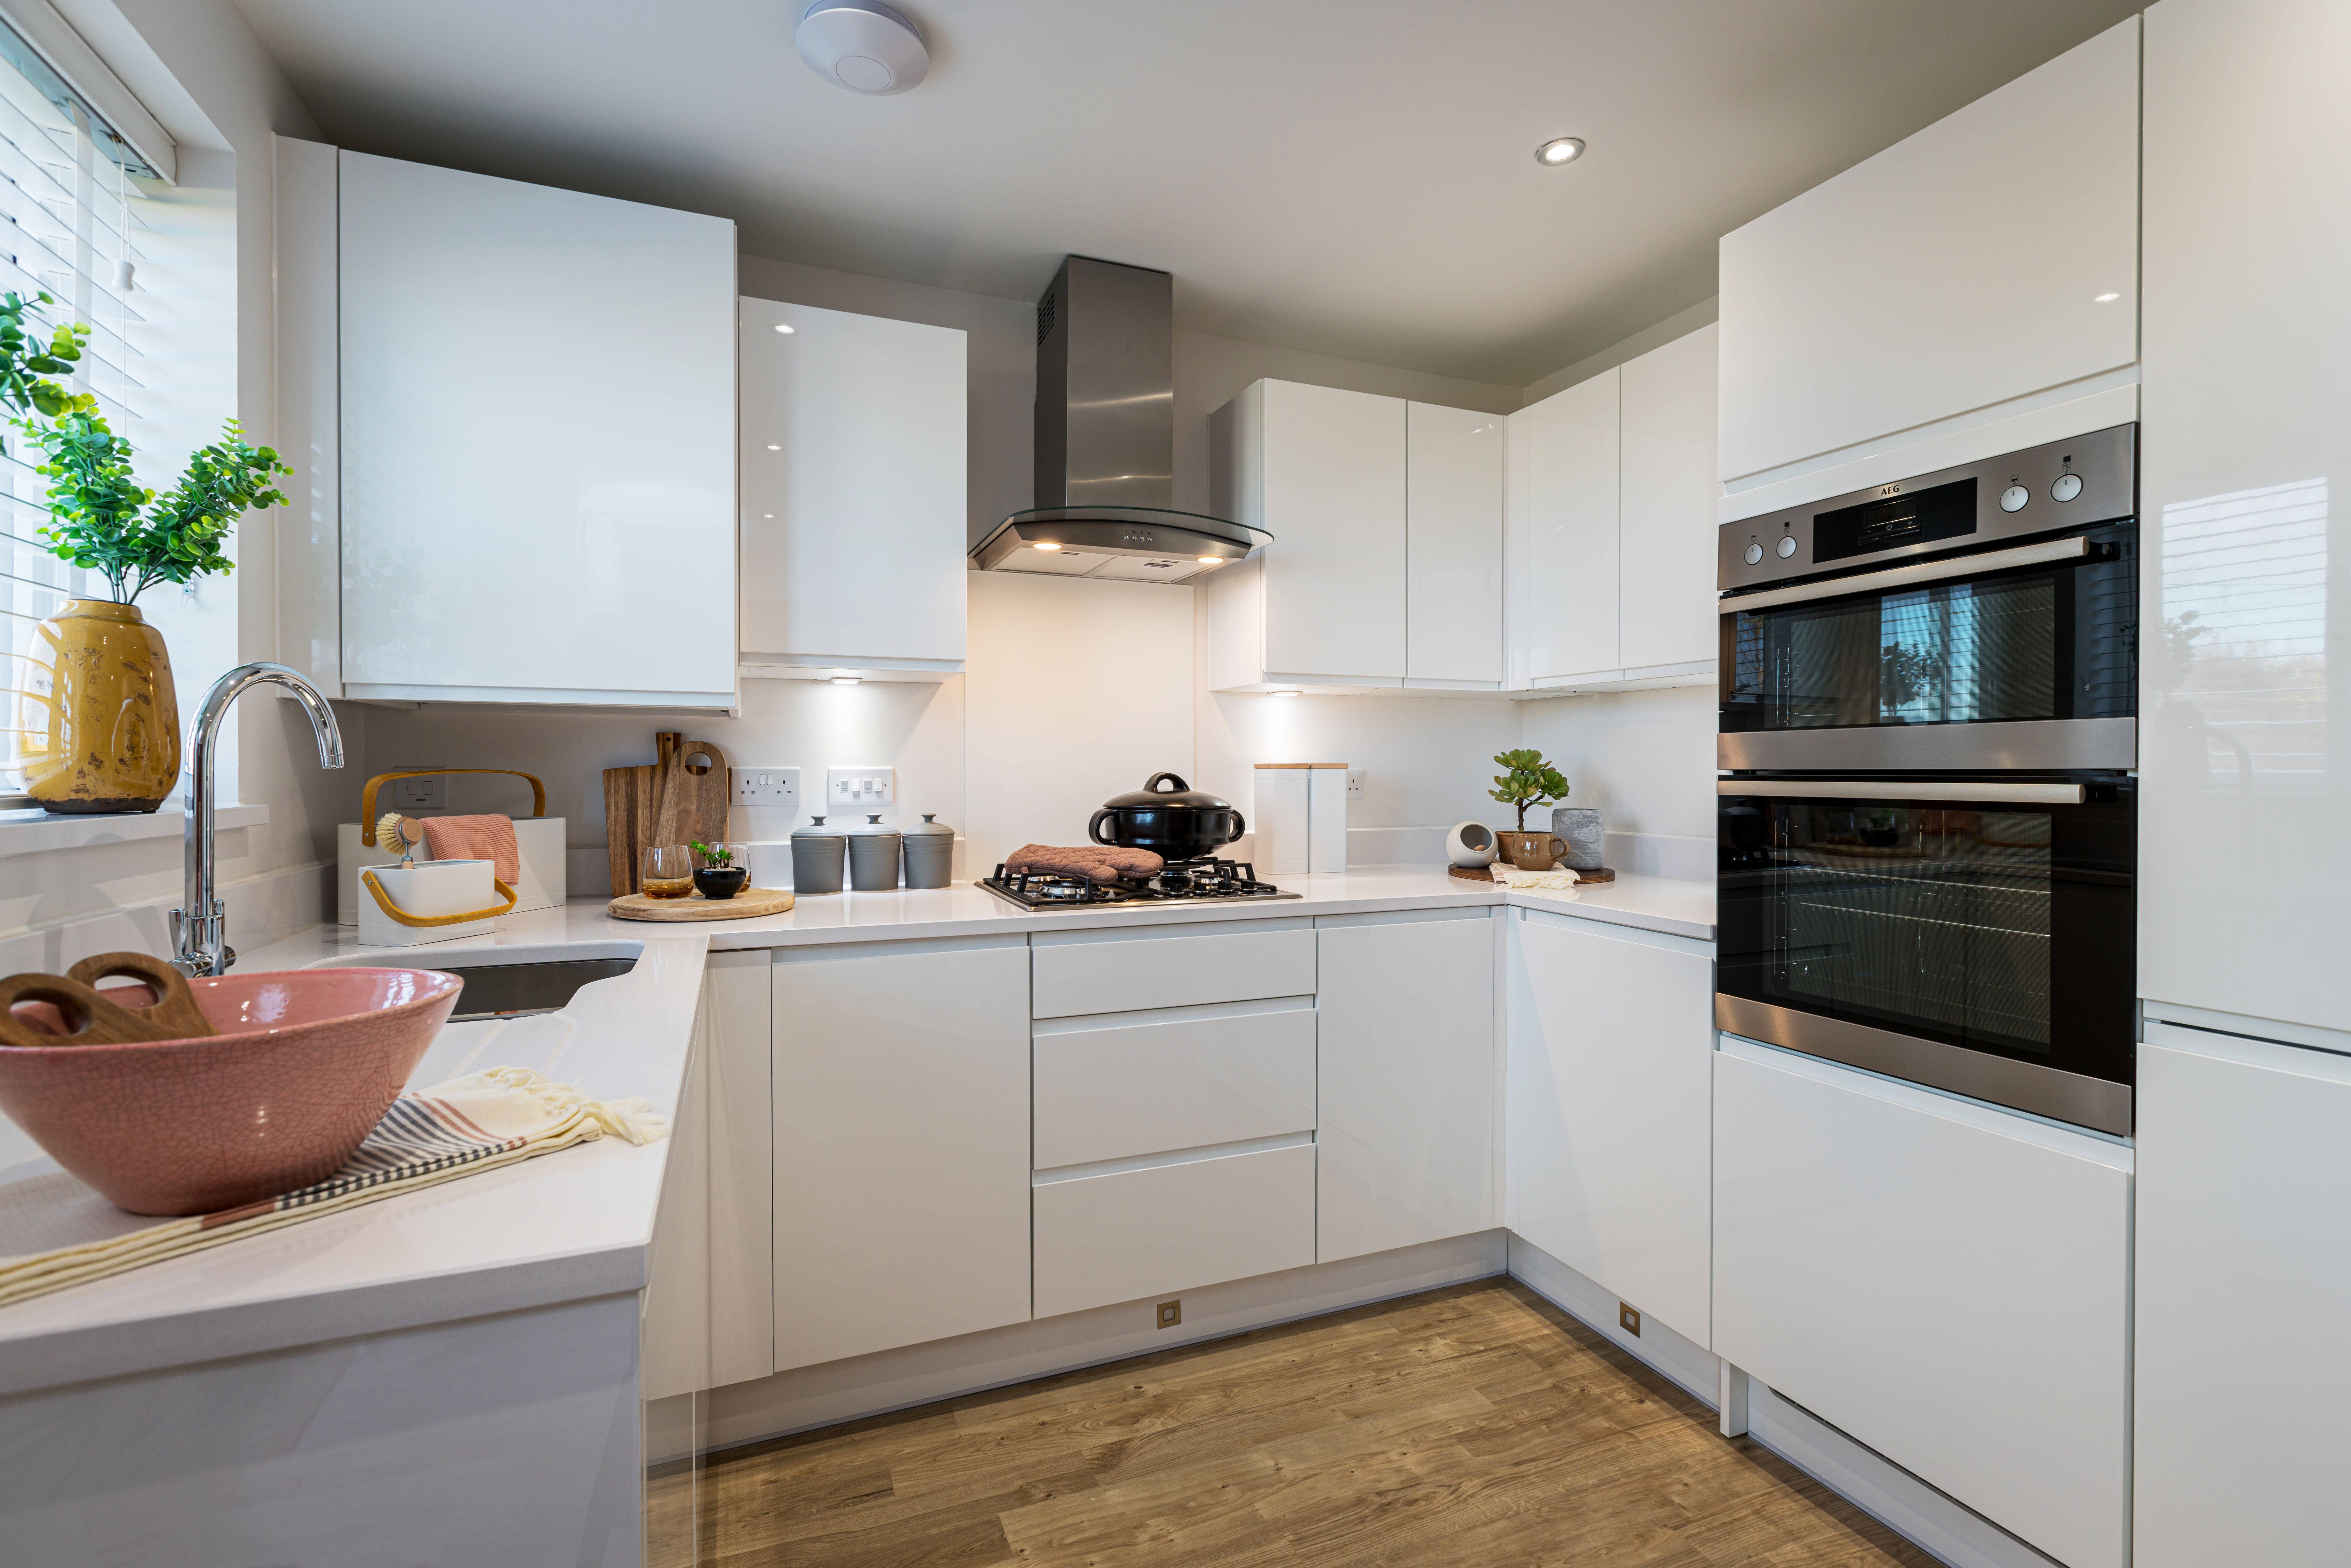 TW OX_Bampton Meadows_PD30_Amersham_Kitchen 2